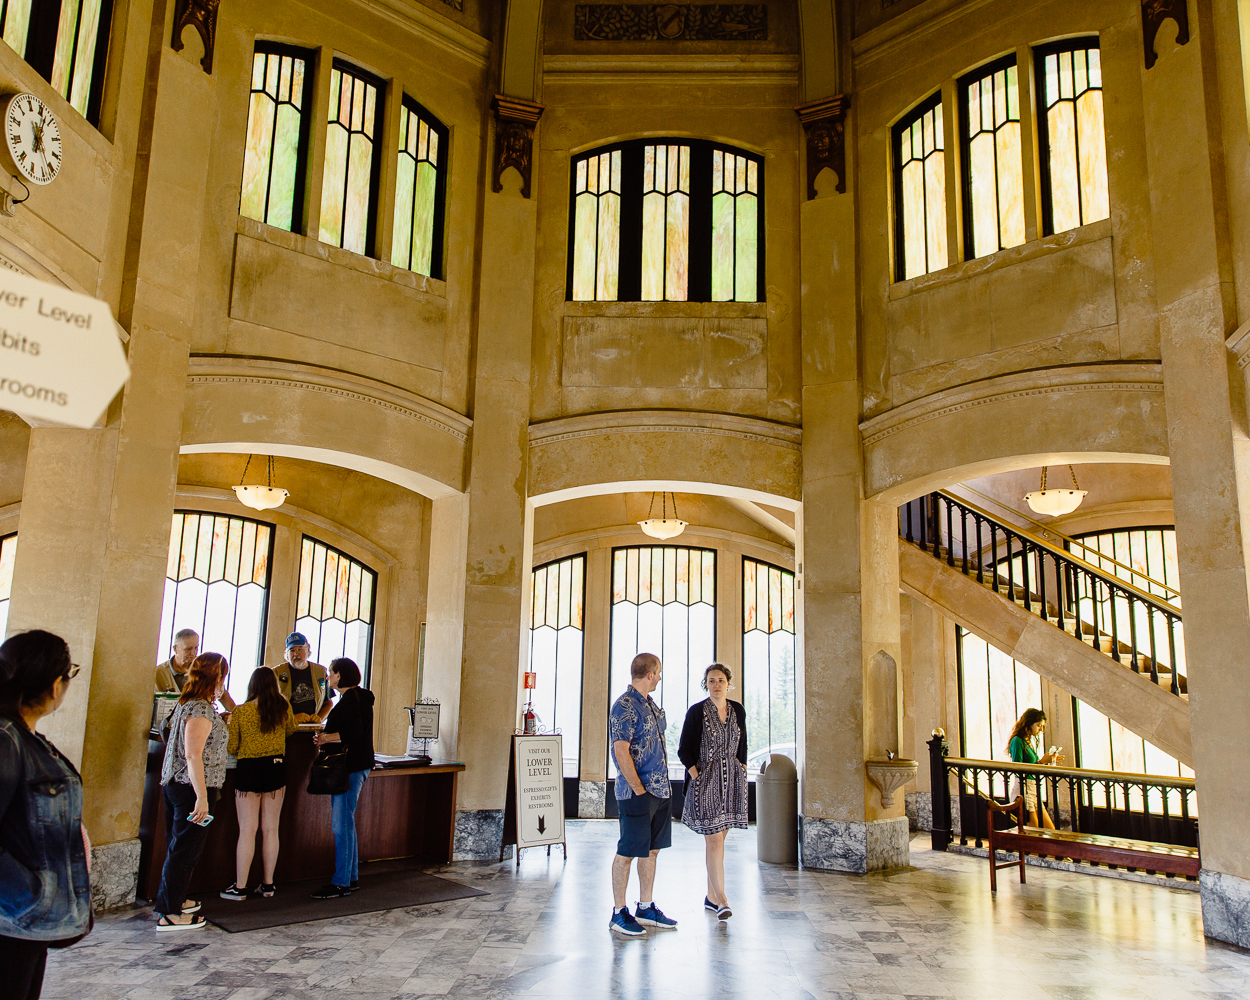 the interior entrance of the vista house, featuring tall ceilings and visitors milling about